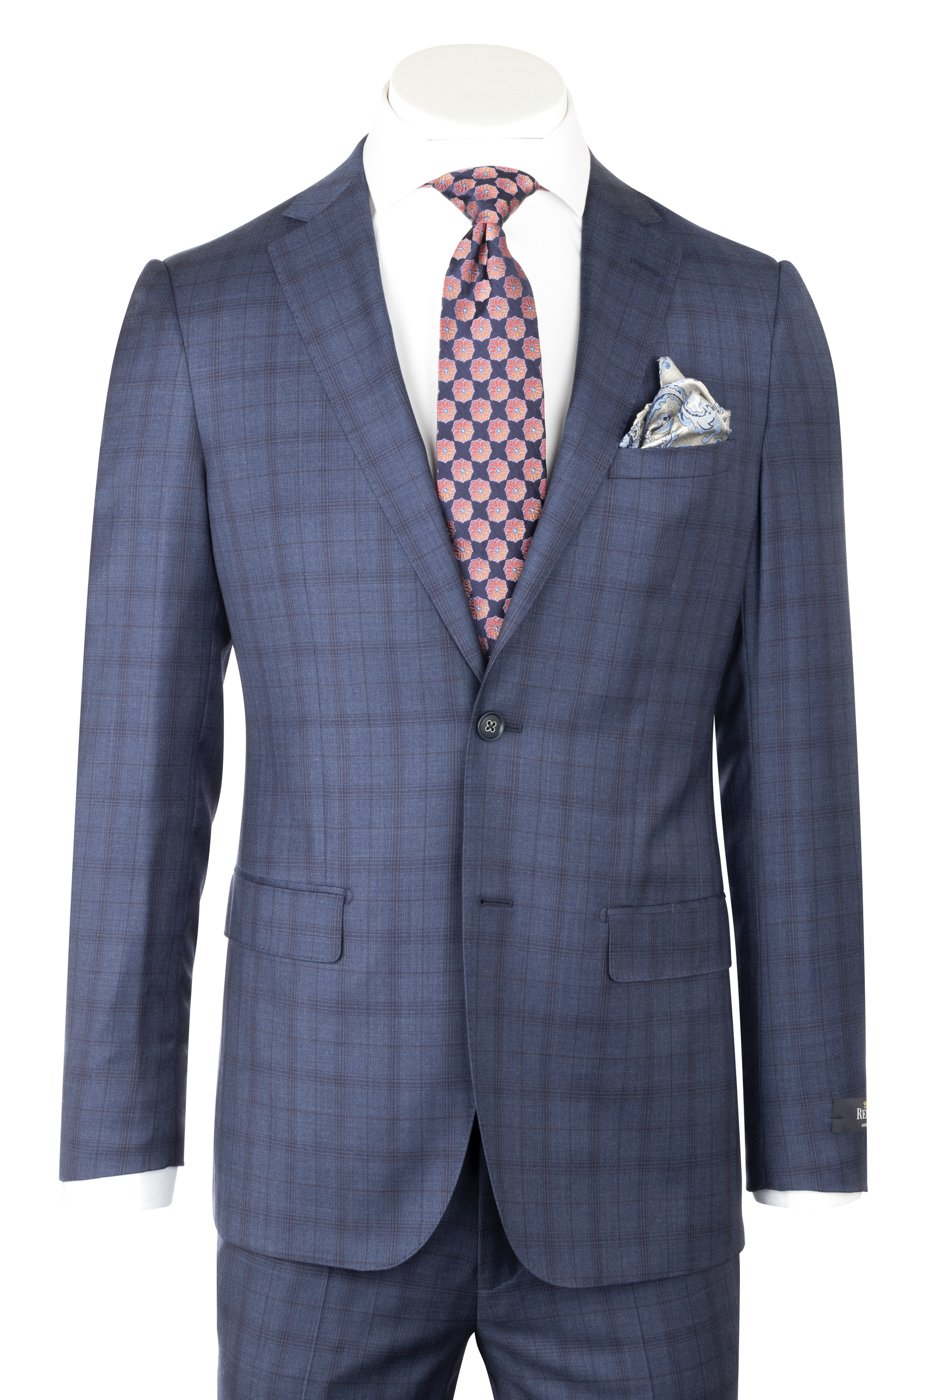 Porto Slim Fit Denim Blue with navy blue windowpane, Pure Wool Suit by Reda Cloth by Canaletto Menswear CR188011/4